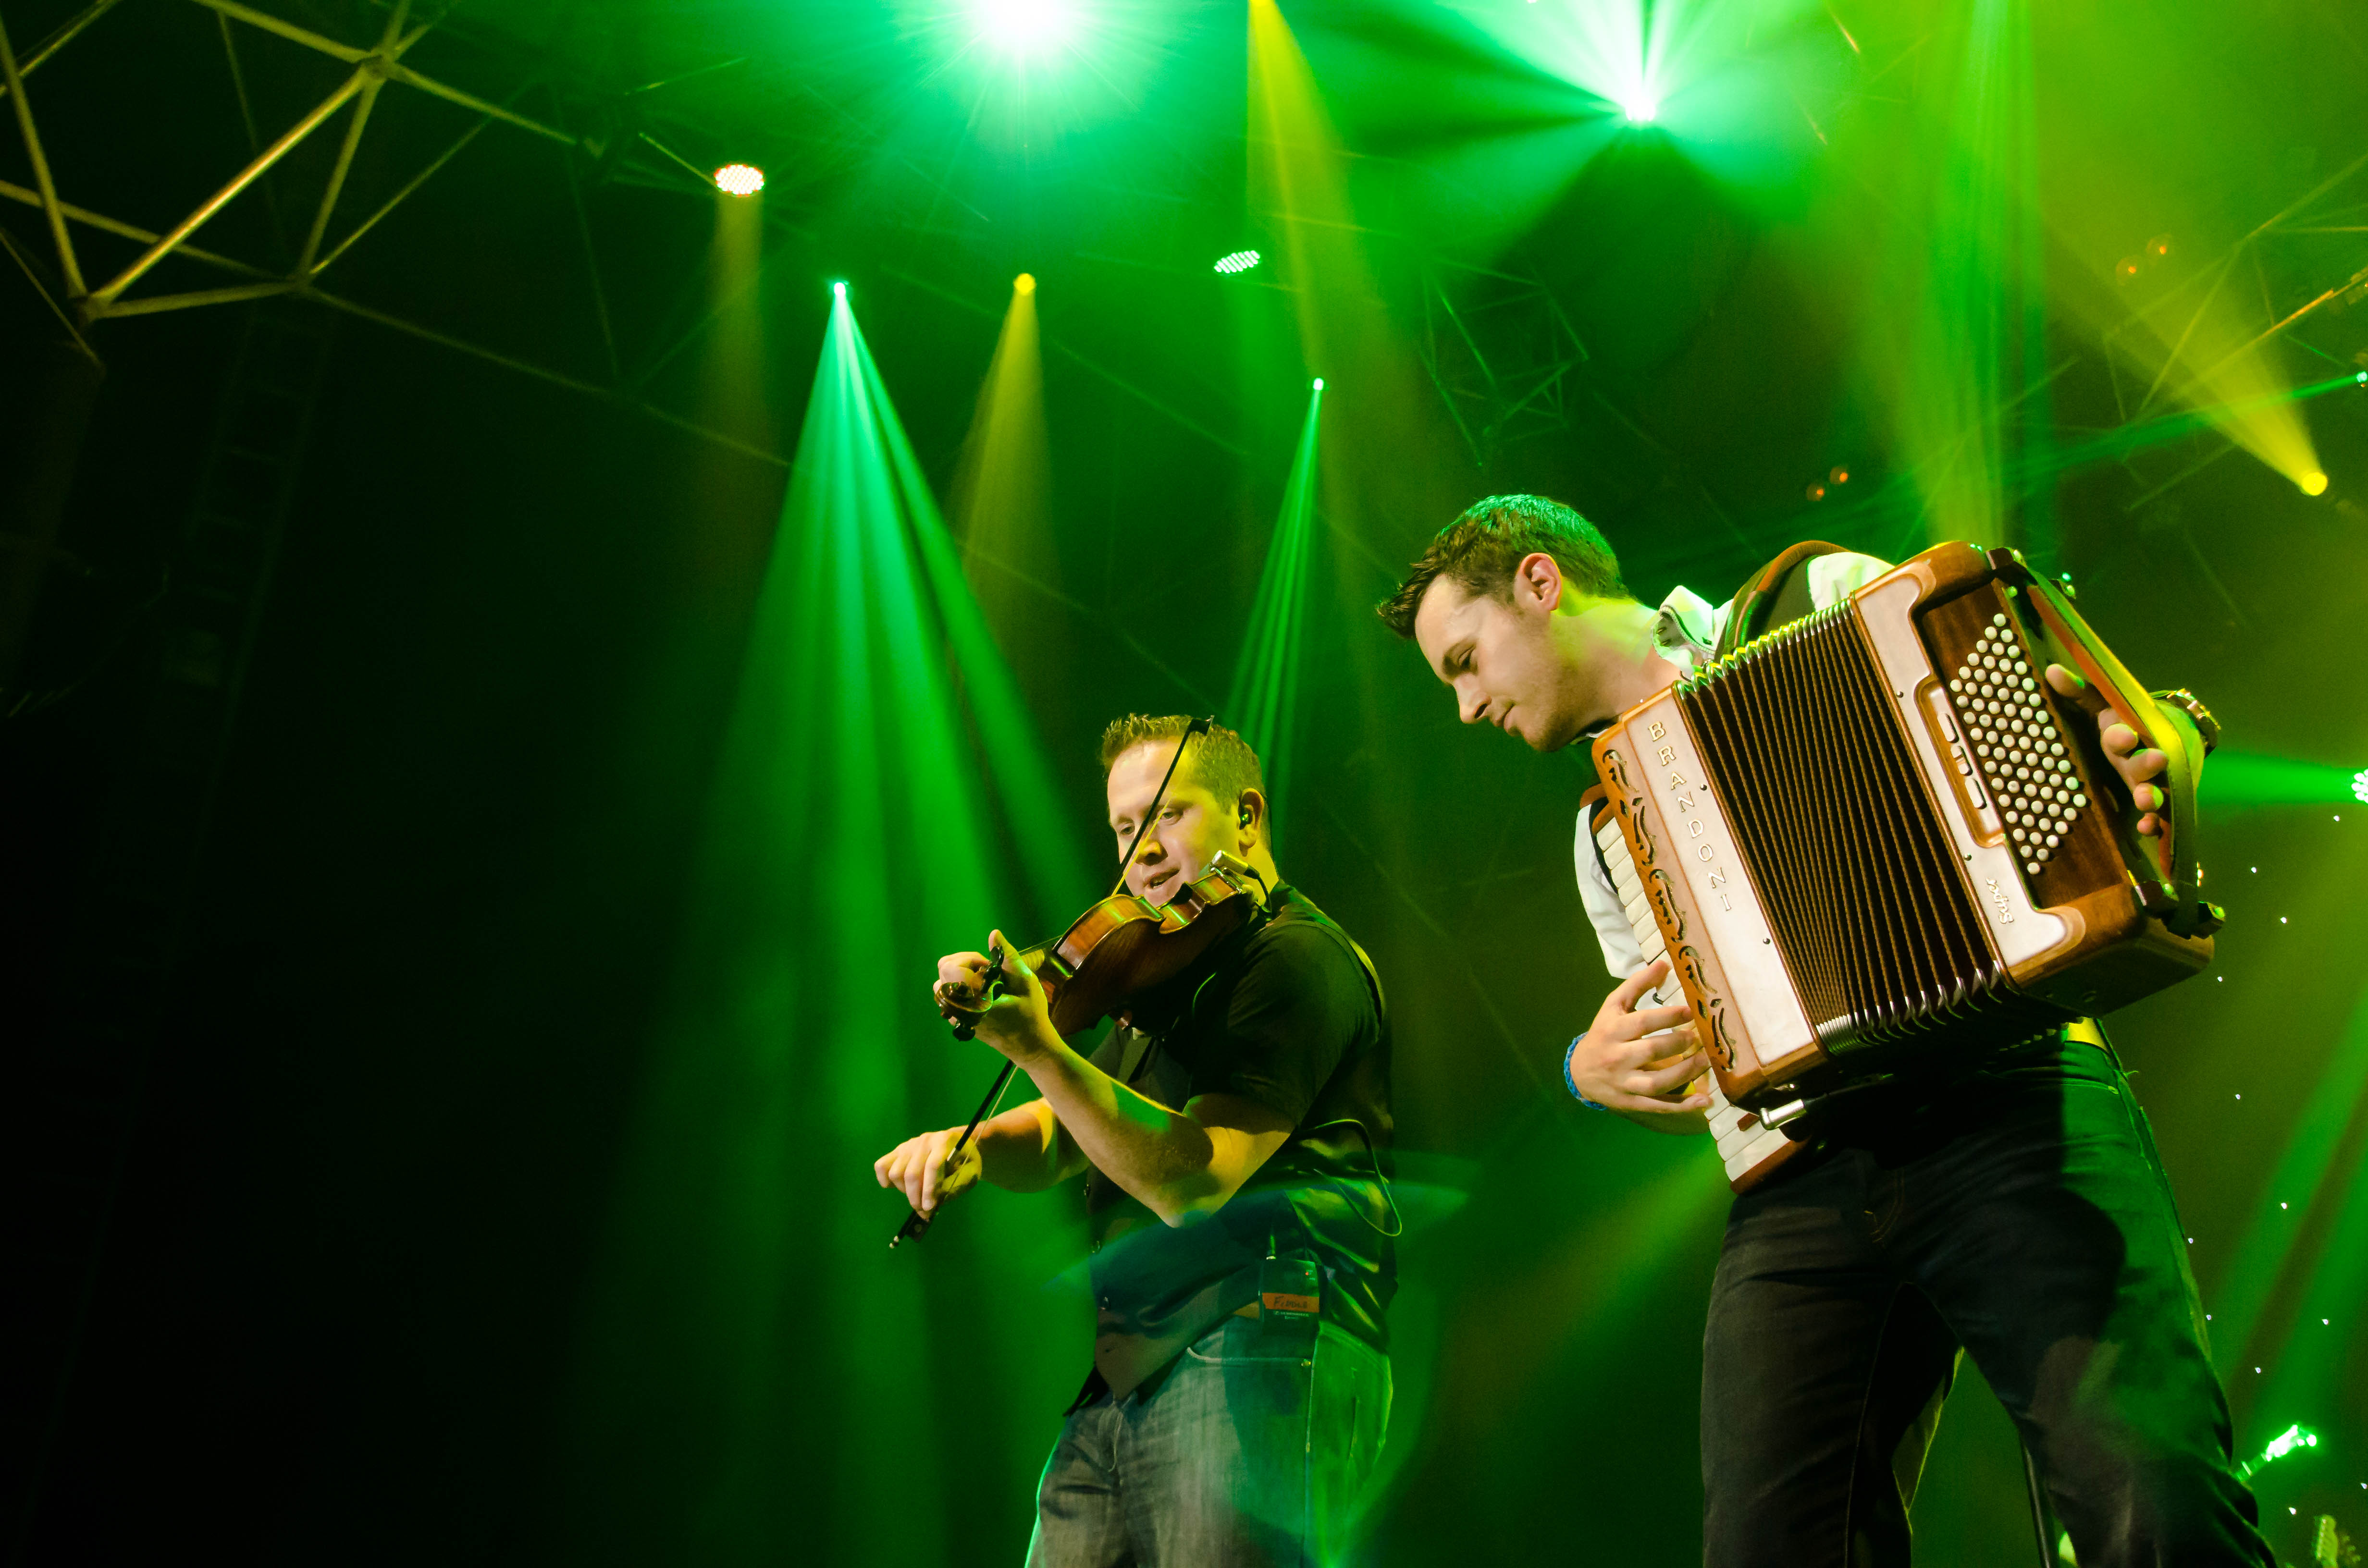 nathan-carter-at-the-marquee-cork-by-sean-smyth-15-6-14-33-of-55